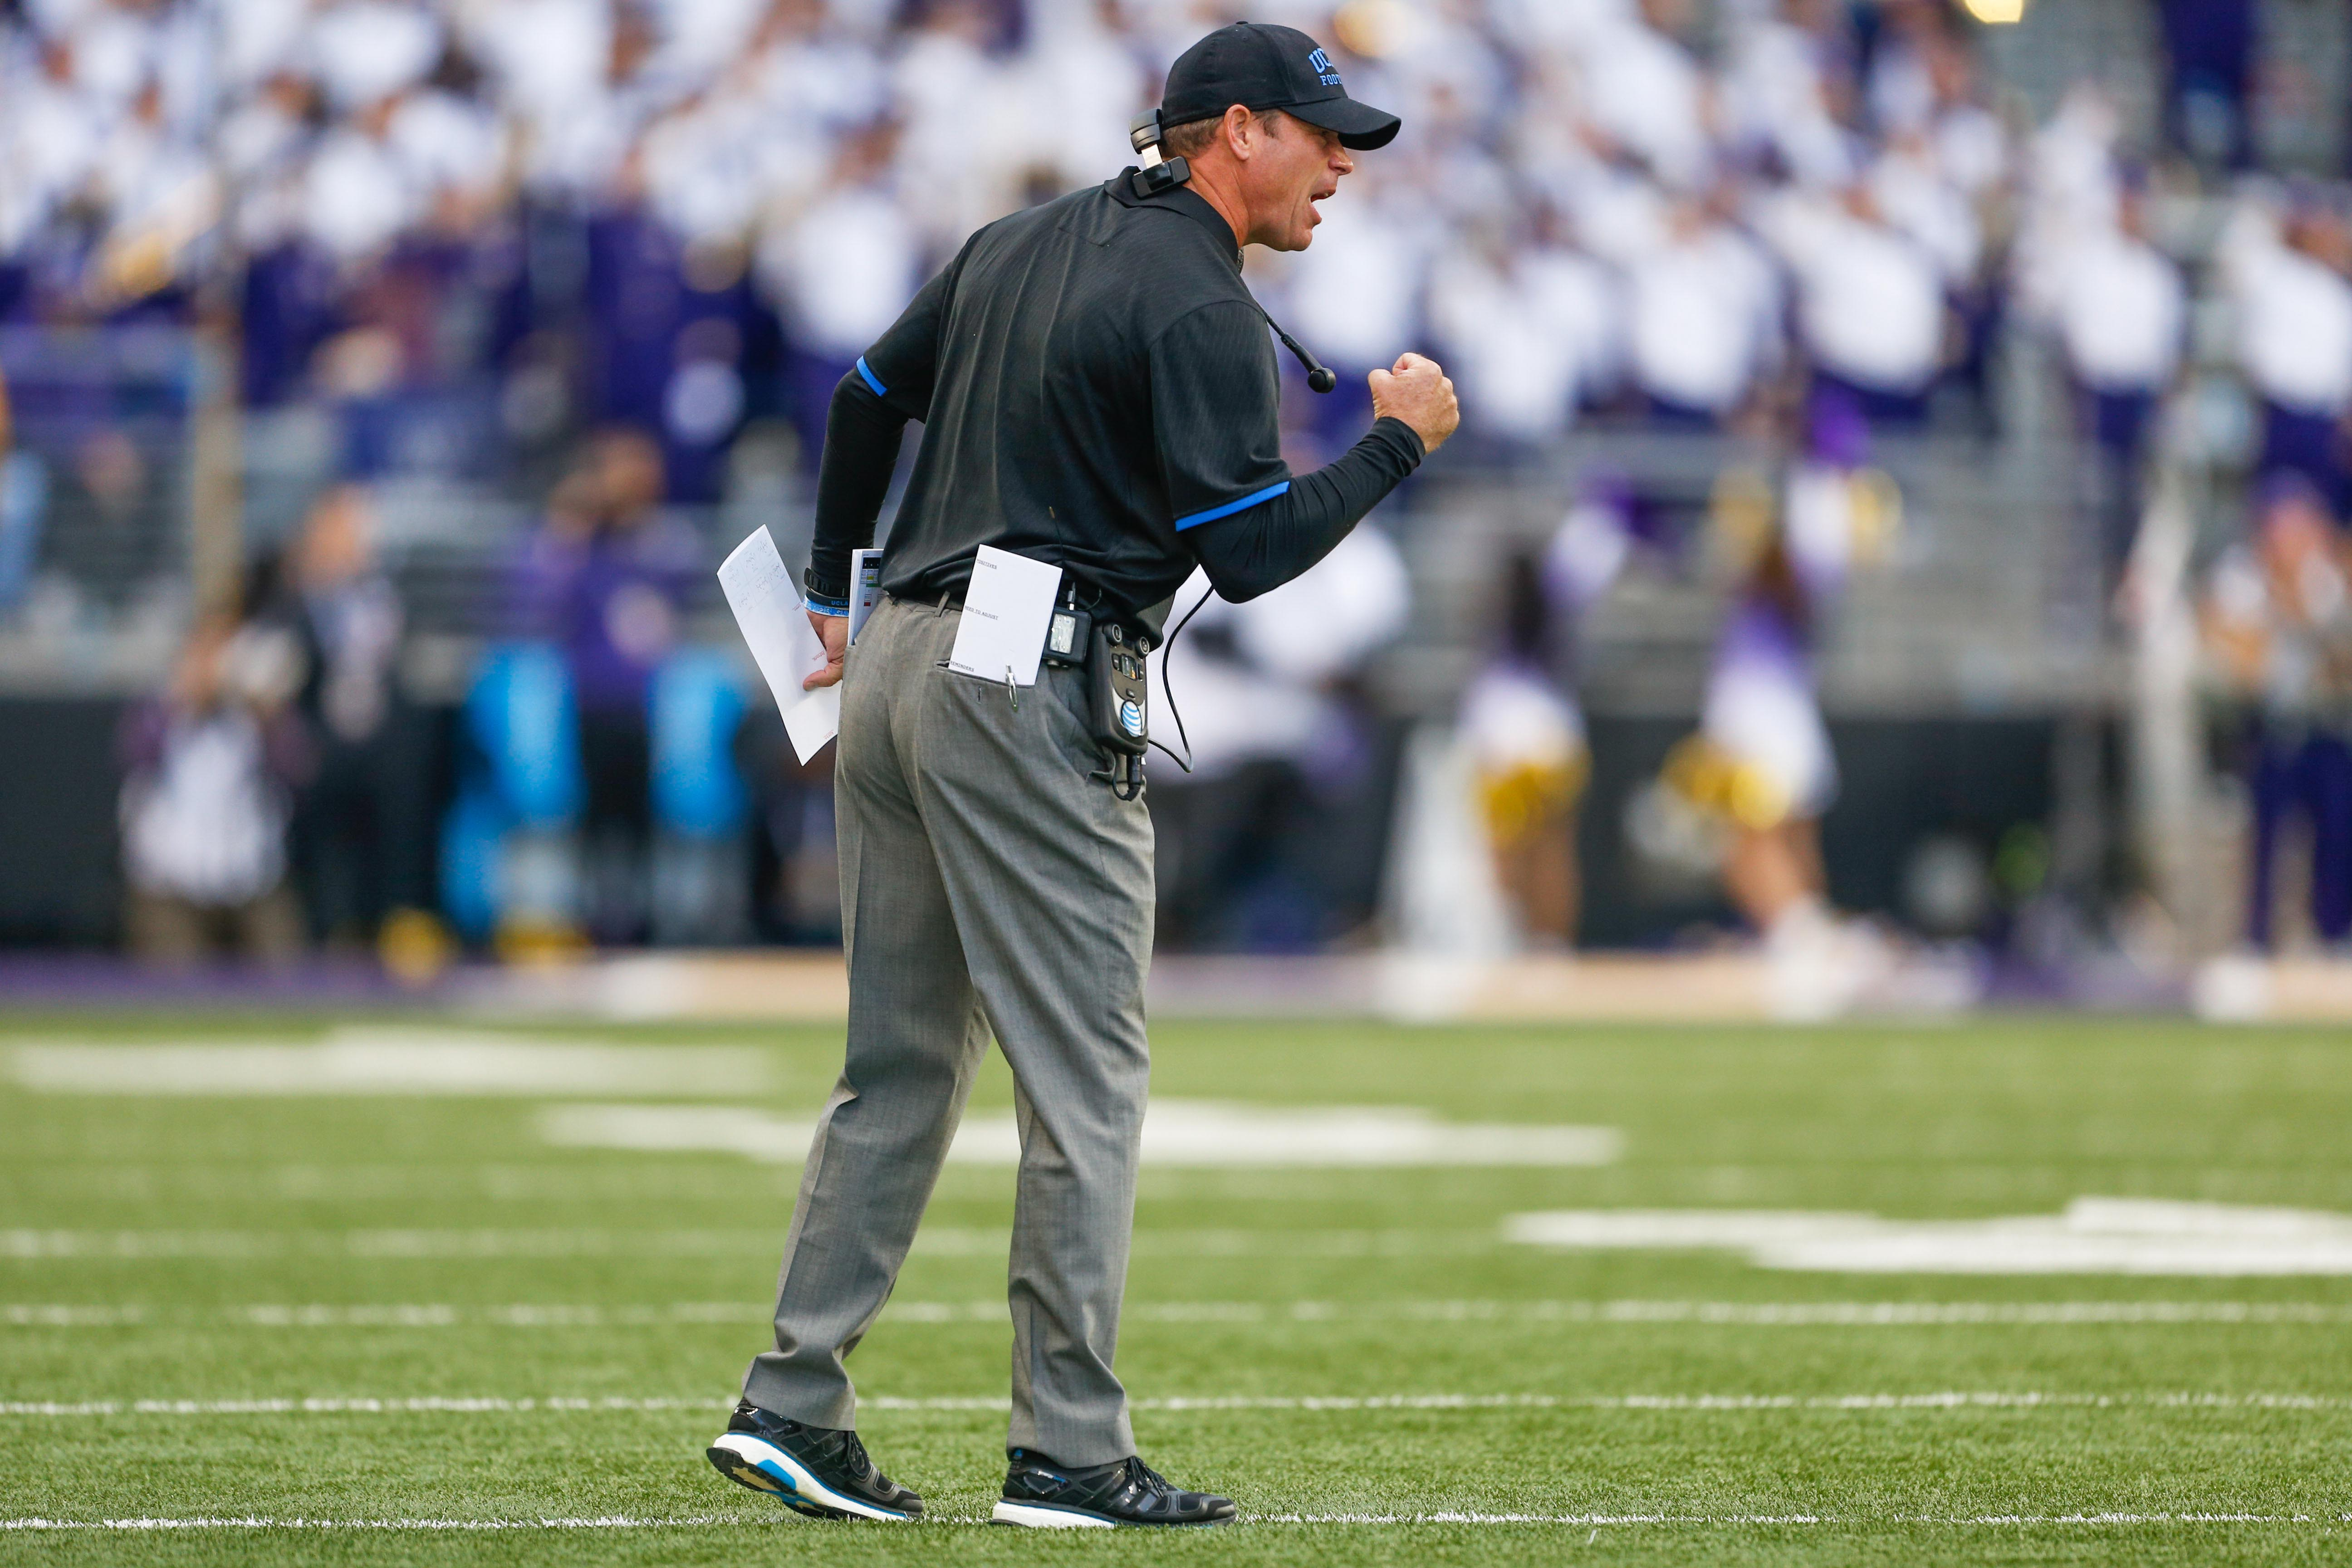 We all know Coach Mora likes to wear black. Let's make sure he's the only Bruin doing so Saturday!